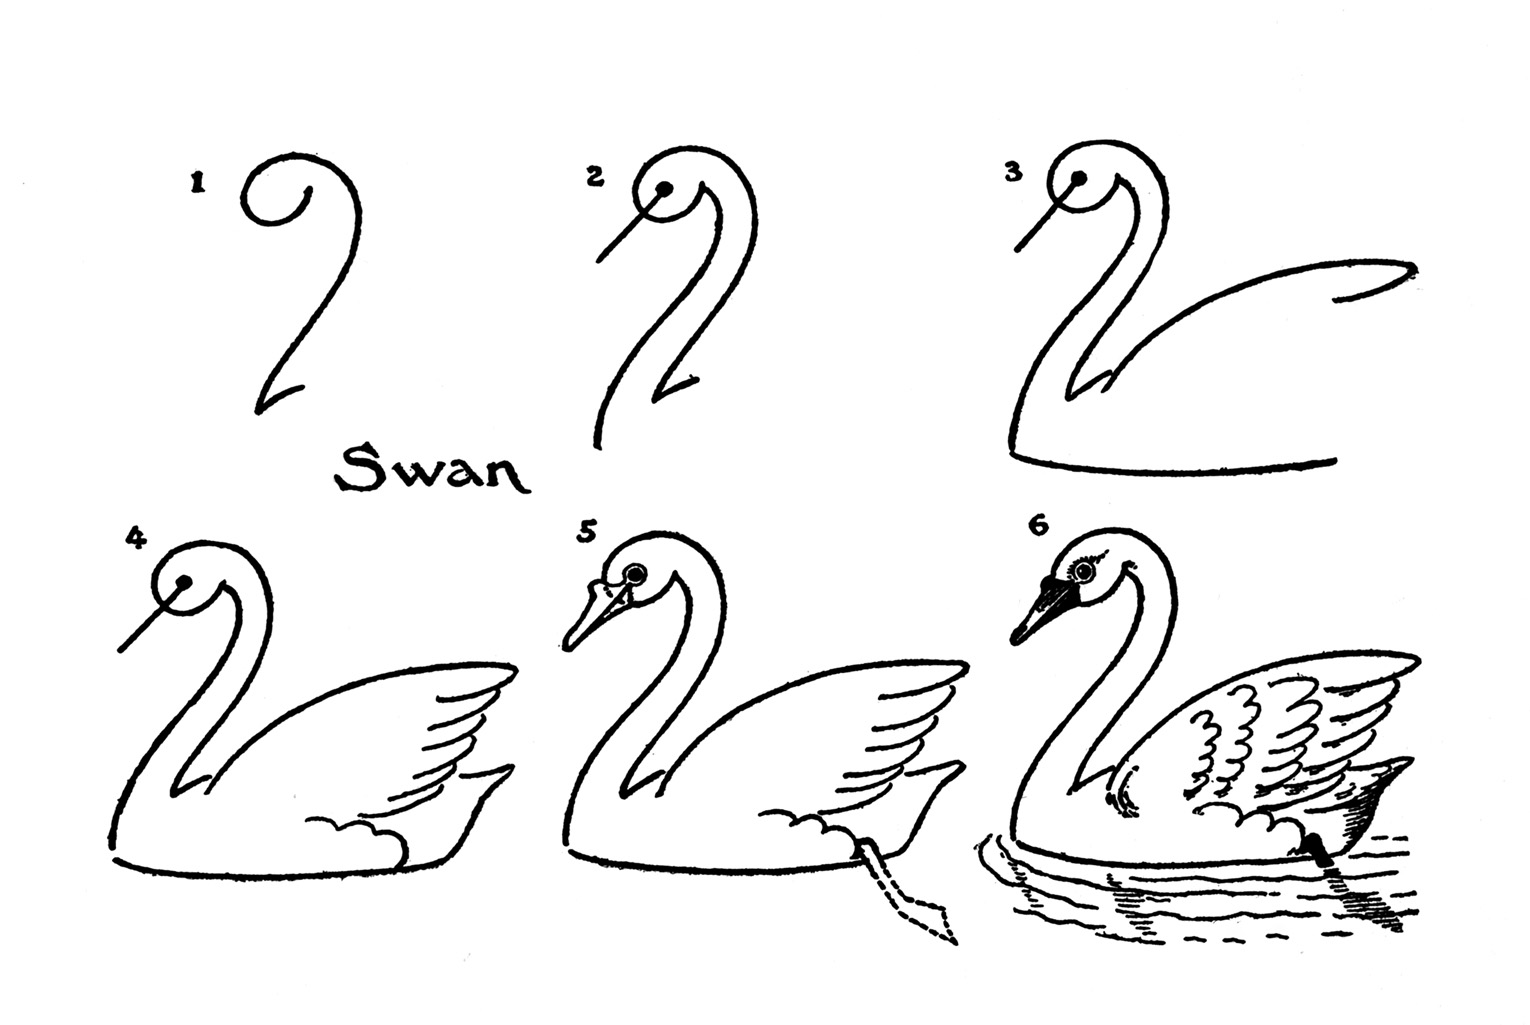 Drawn swan For  Coyote Coloring Kids